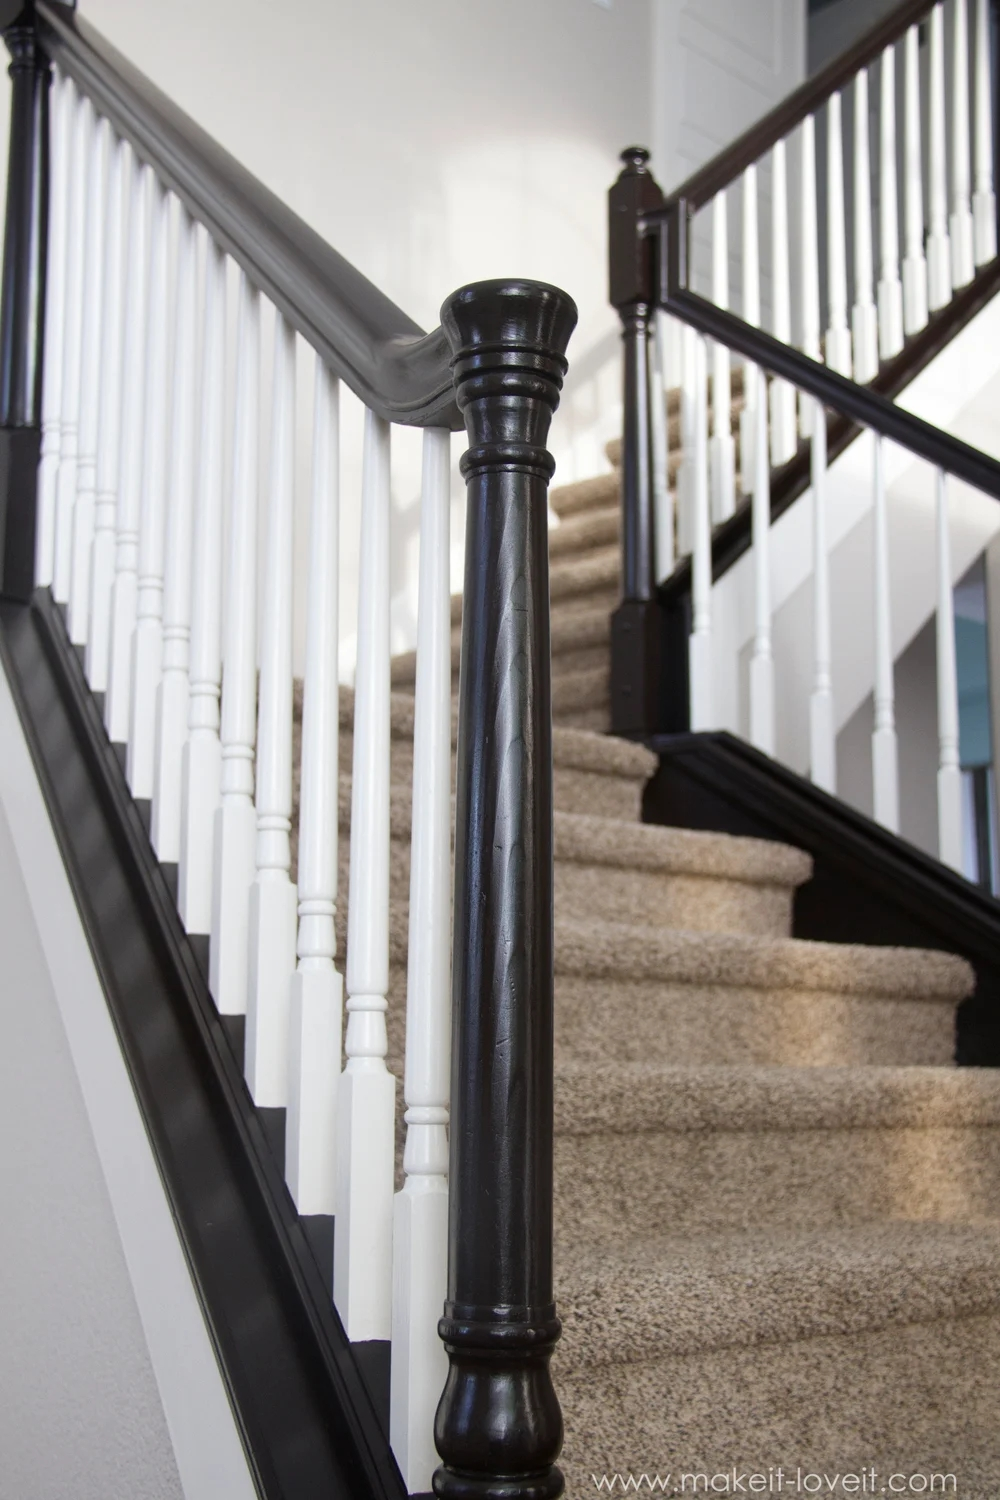 How To Paint Stain Wood Stair Railings Oak Banisters Spindles | New Banister And Spindles | Stair Treads | Iron Stair | Oak Banister | Iron Balusters | Floating Stairs